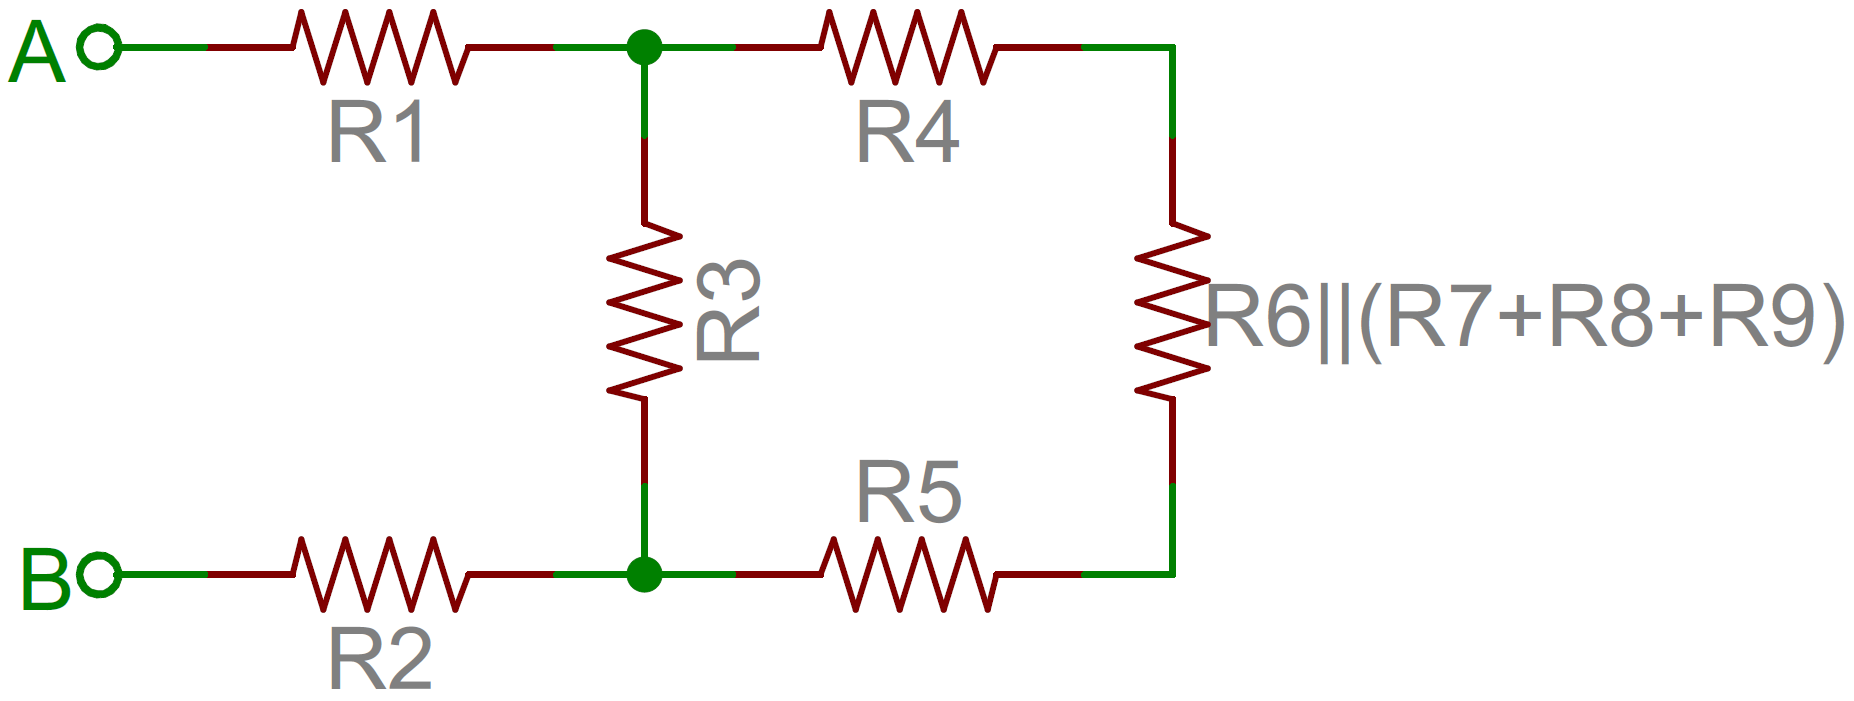 Resistors How Do Switches Control Lamps In A Series Circuit What Happens Resistor Network Simplified